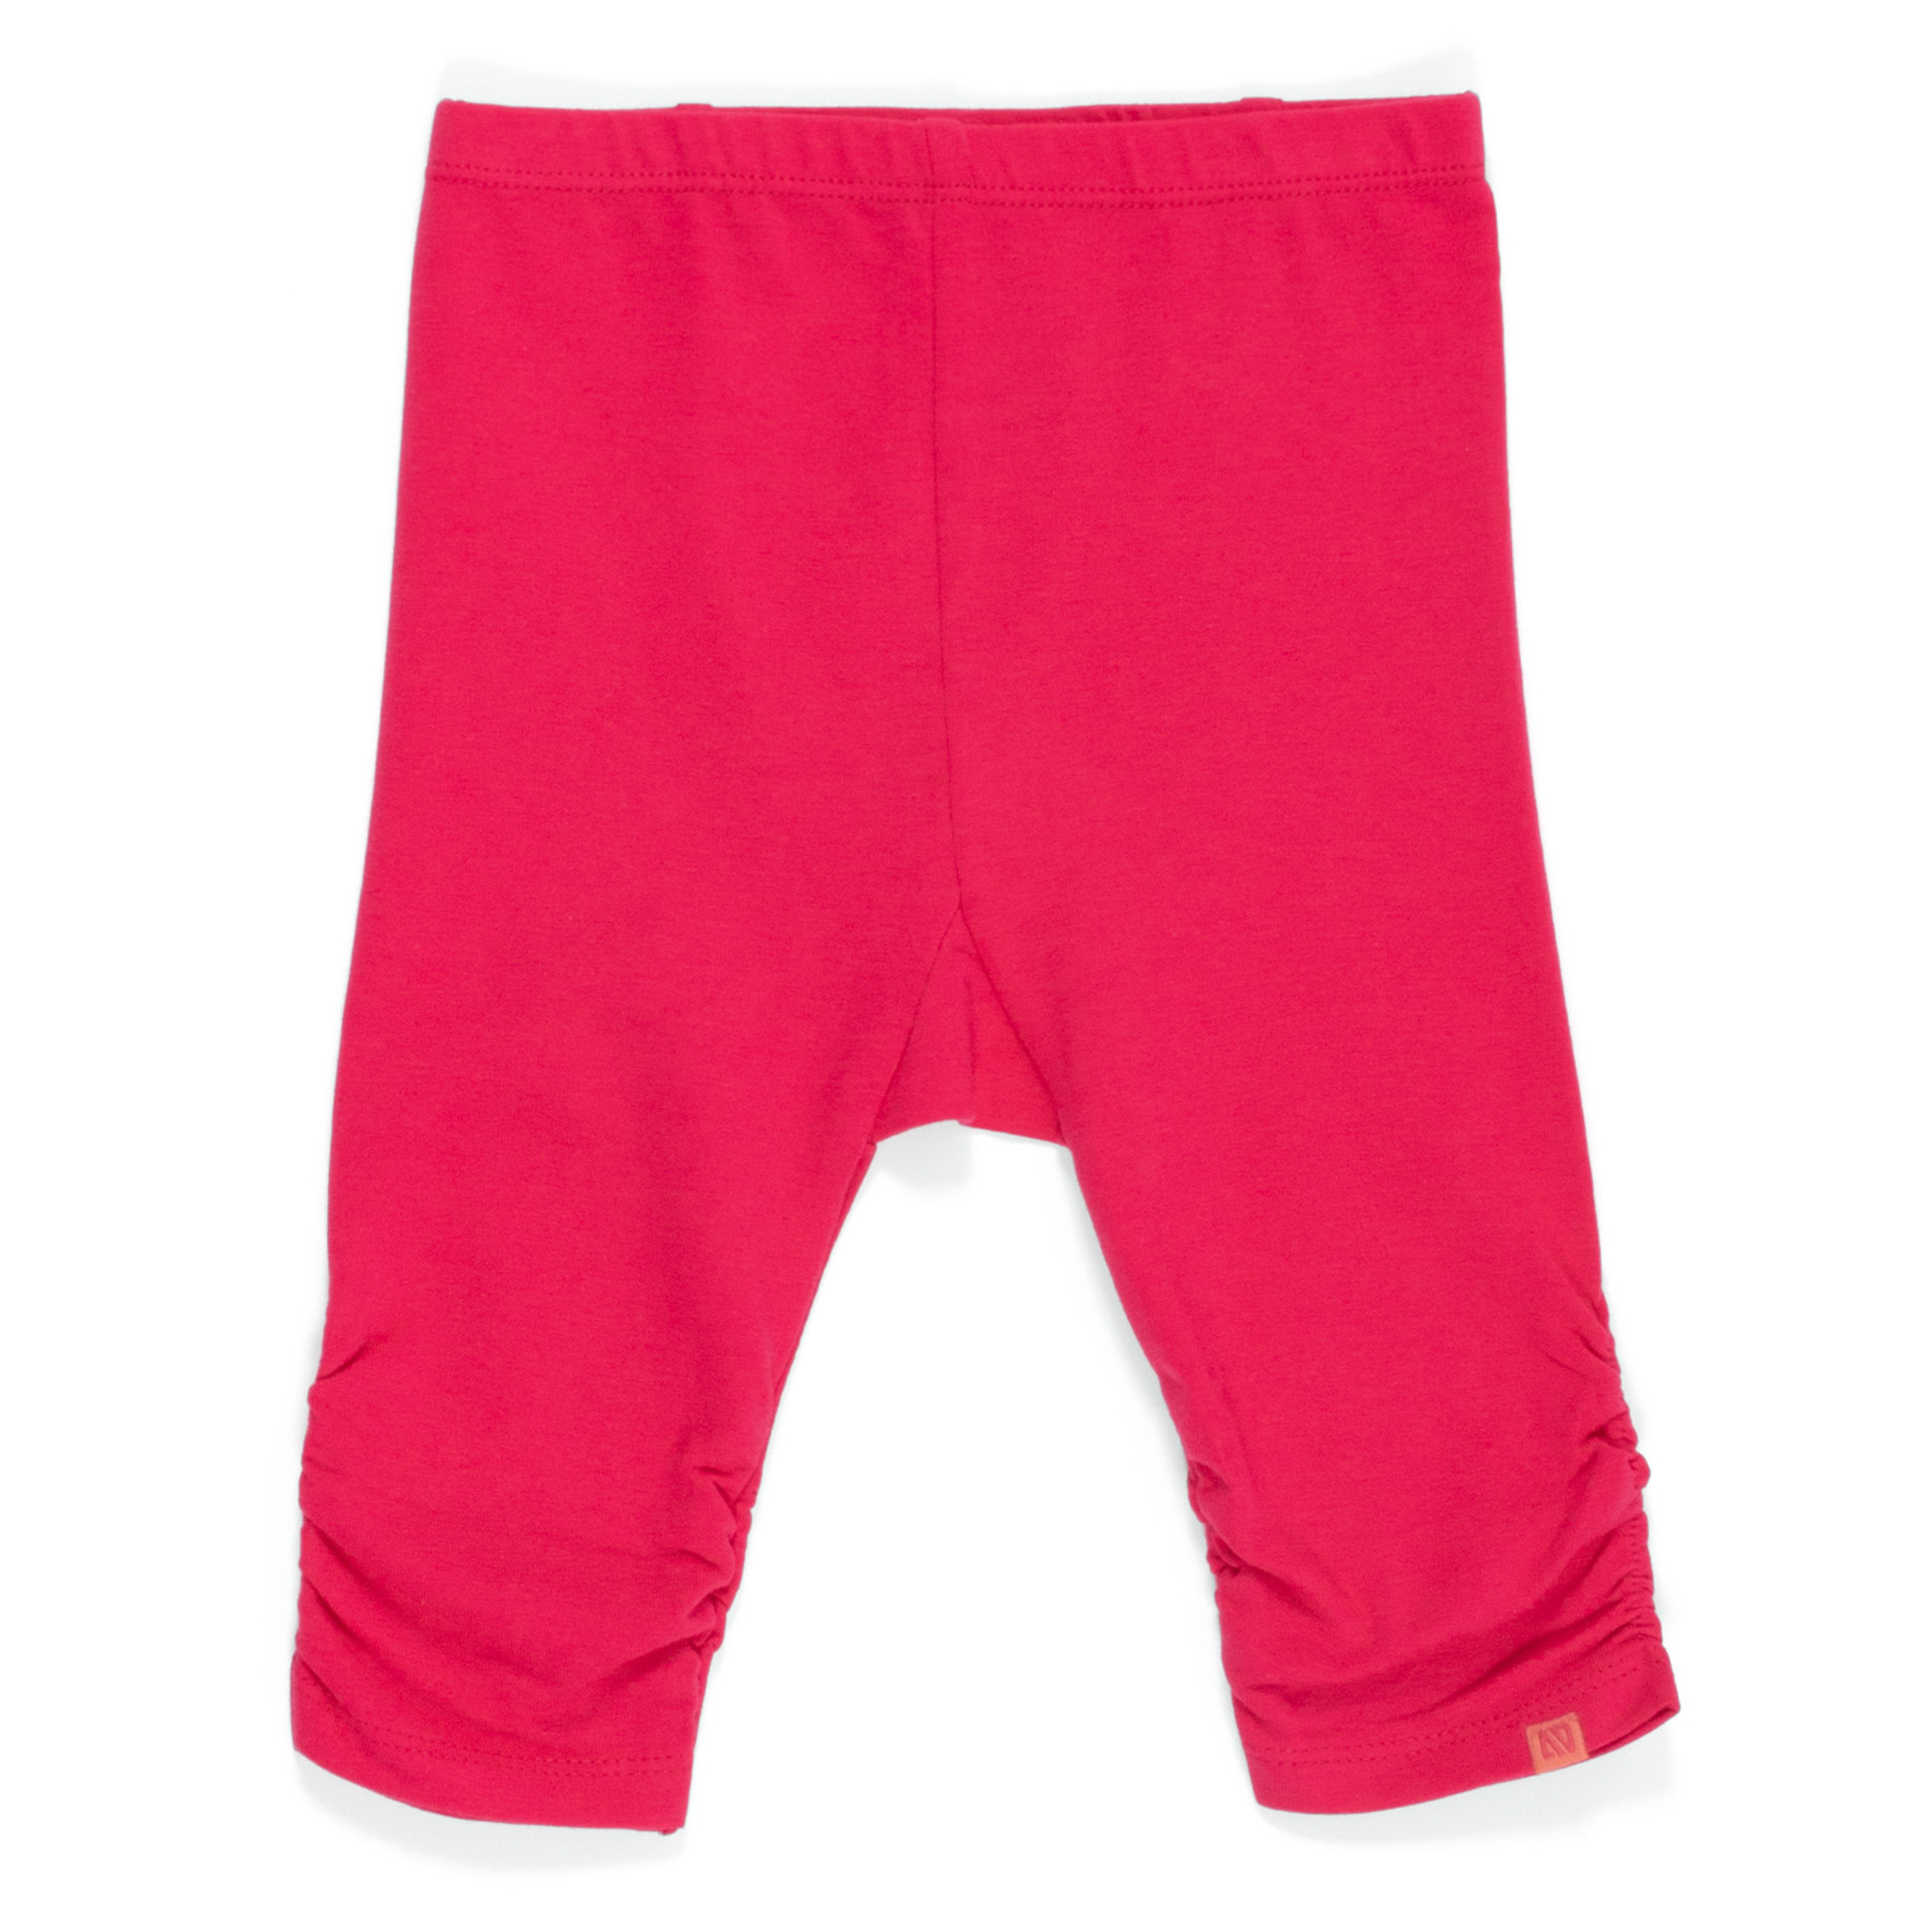 3/4 leggings - Coral - Girls